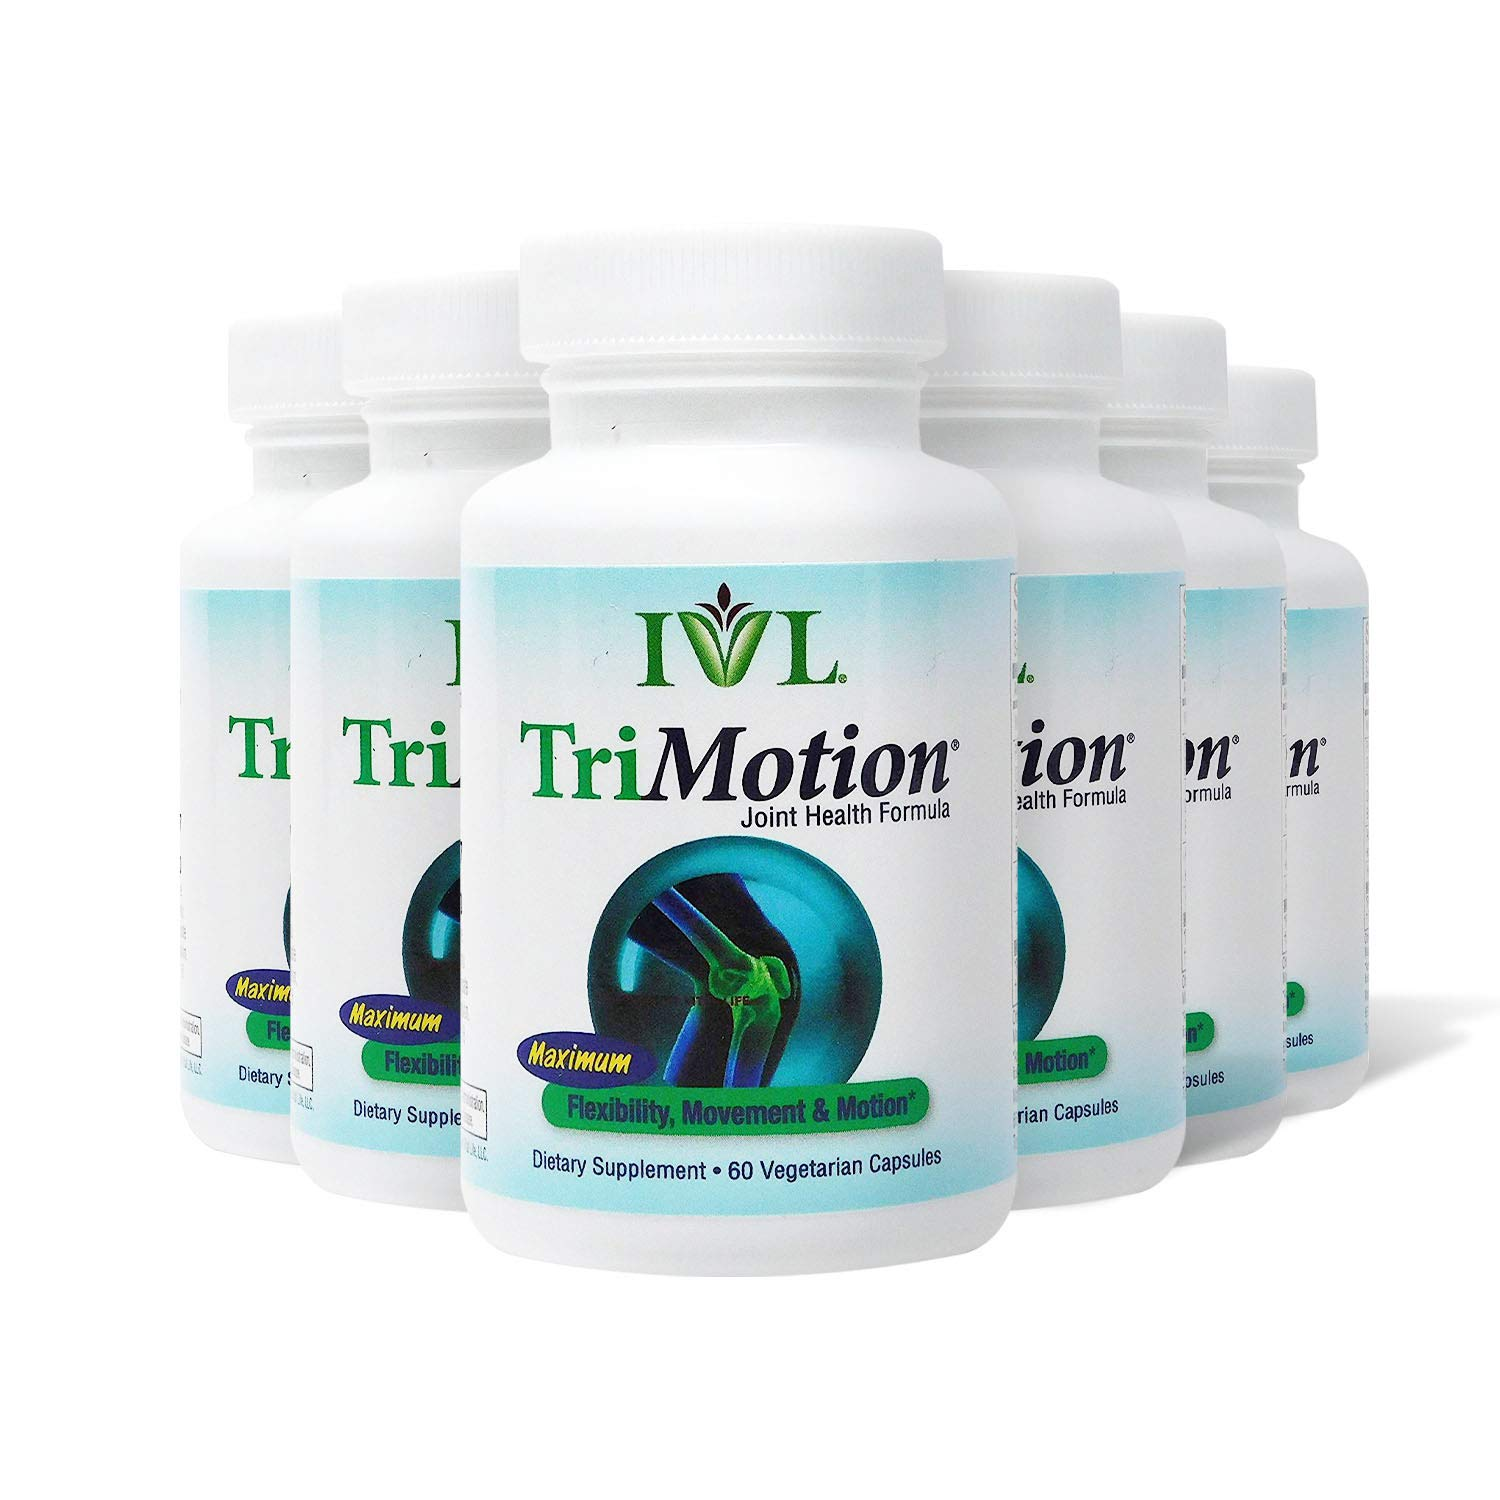 IVL TriMotion Joint Health Support Supplement, 60 Capsules per Bottle (Pack of 6) by IVL